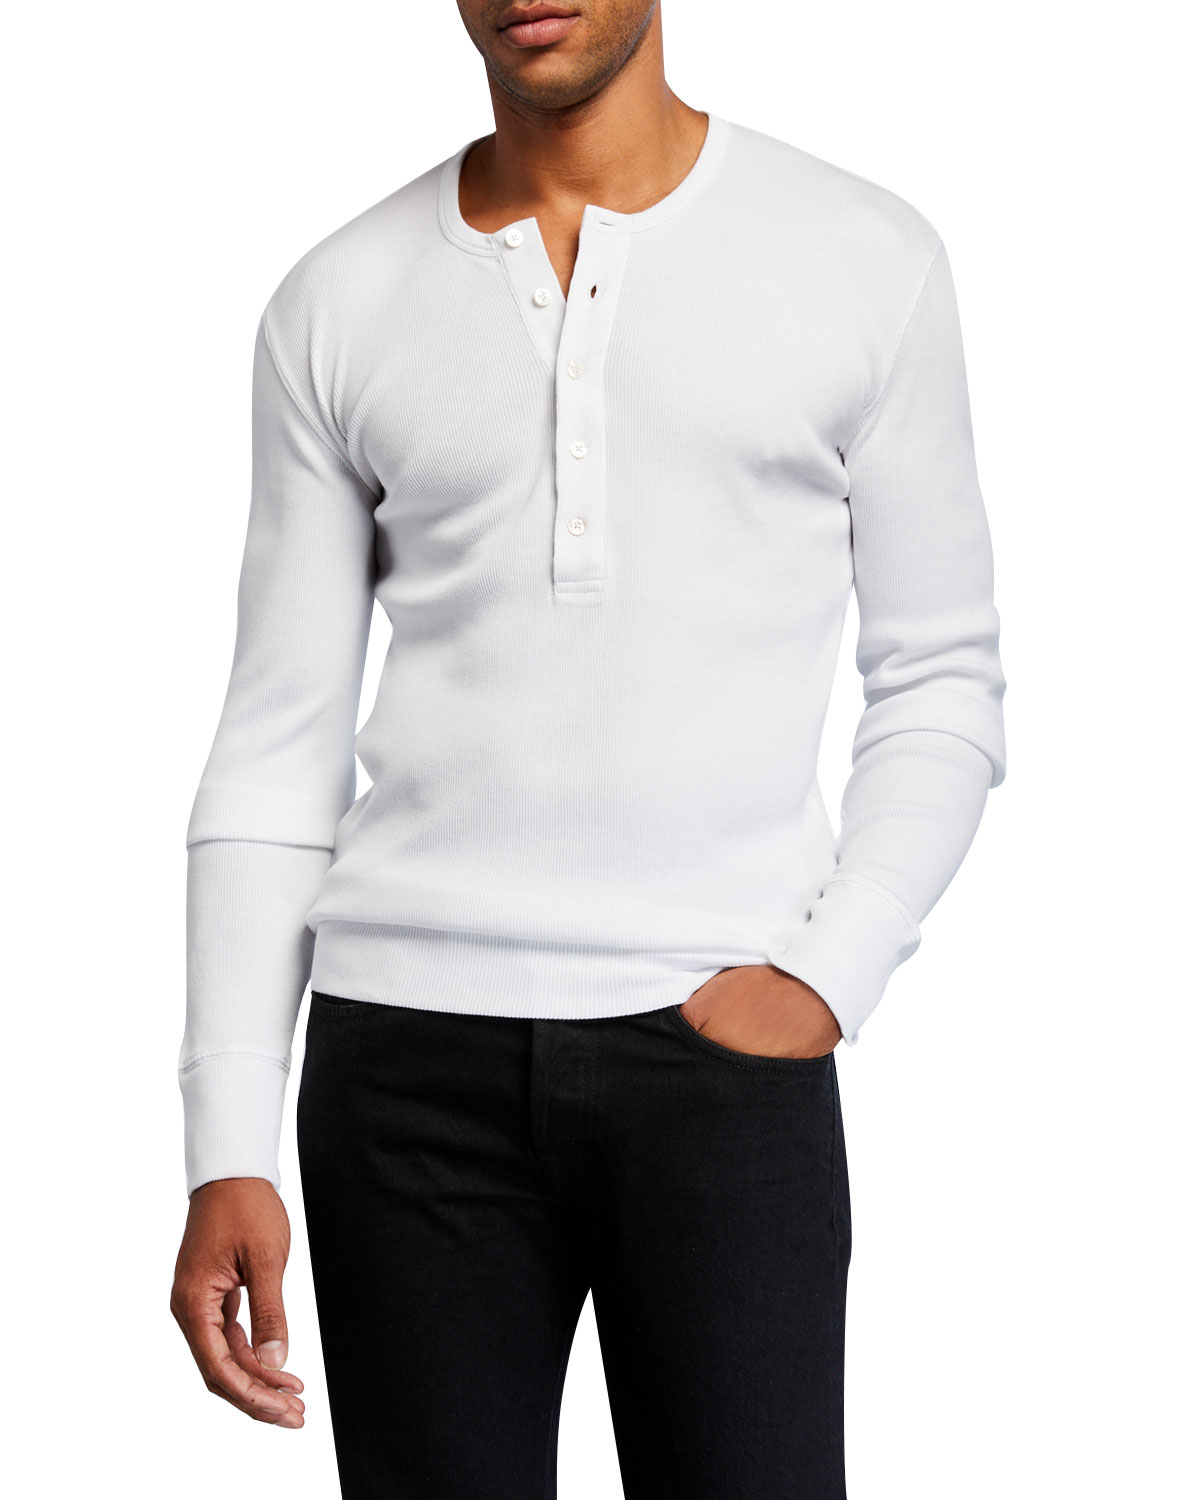 Tom Ford T-shirts MEN'S SOLID COTTON HENLEY SHIRT